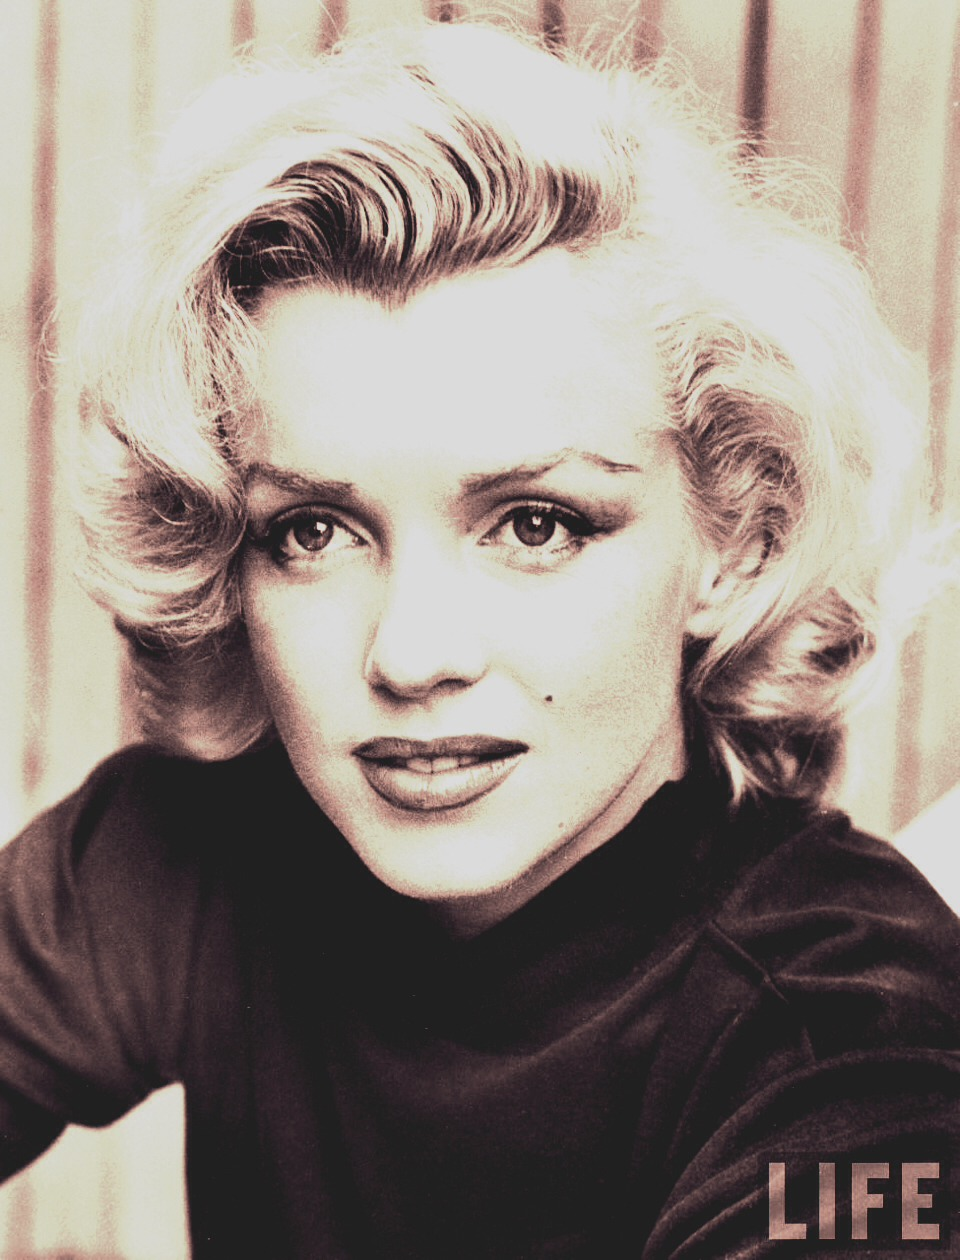 Marilyn Monroe applied Vaseline to her eyelashes and eyelids every night. This method keeps your eyelashes healthy and promotes growth.